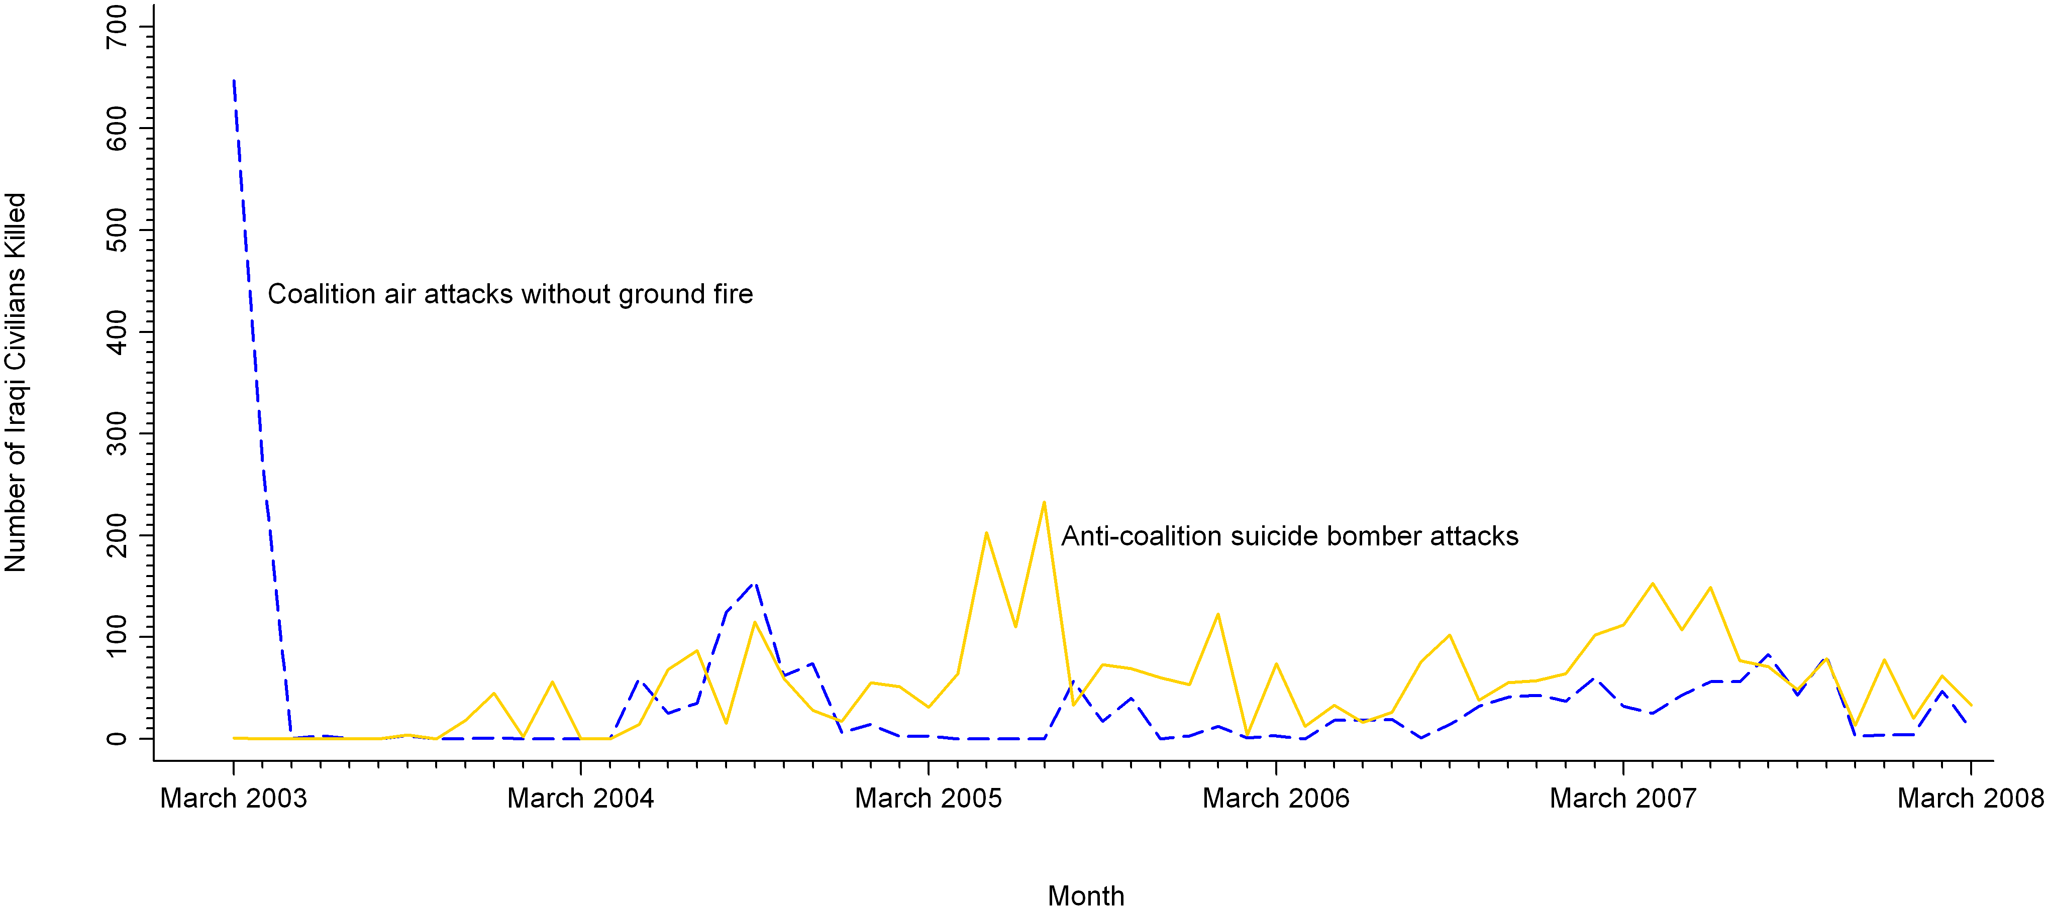 Monthly civilian deaths from Coalition air attacks and Anti-Coalition suicide bombers.